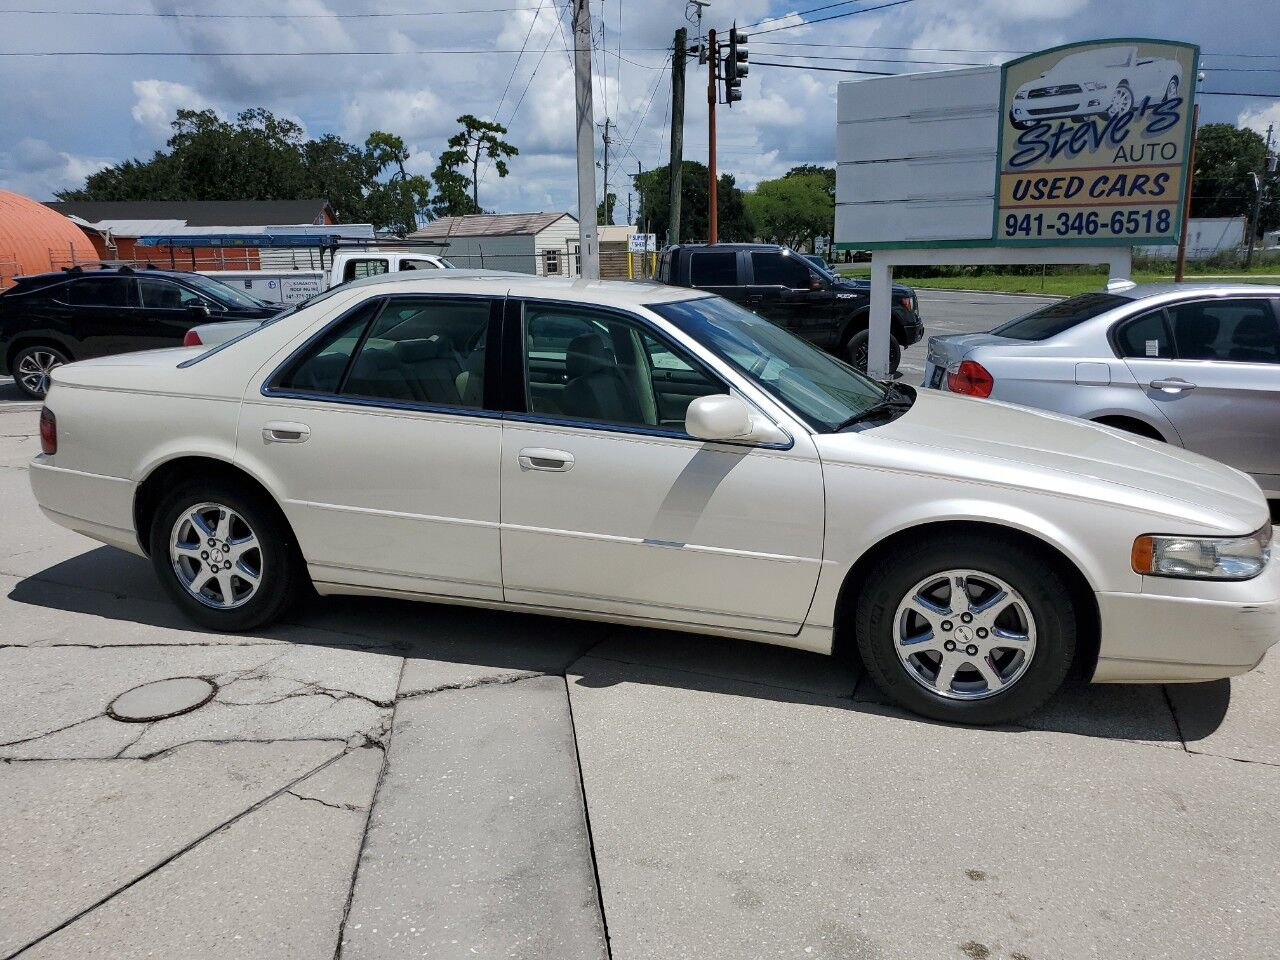 used cadillac seville for sale carsforsale com used cadillac seville for sale